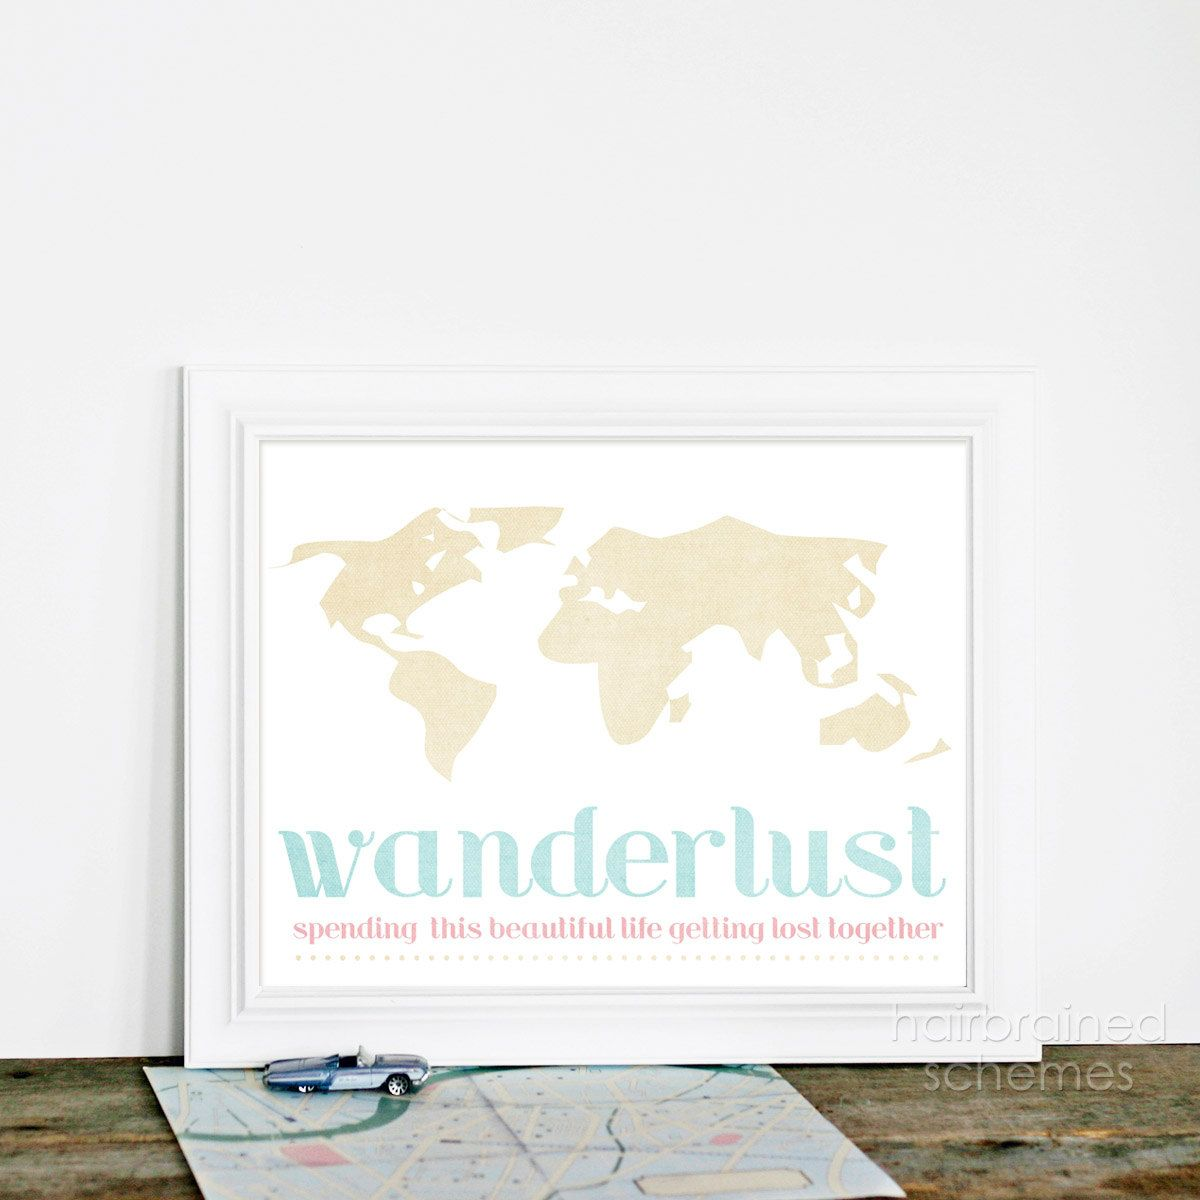 Wanderlust spending this beautiful life getting lost together print